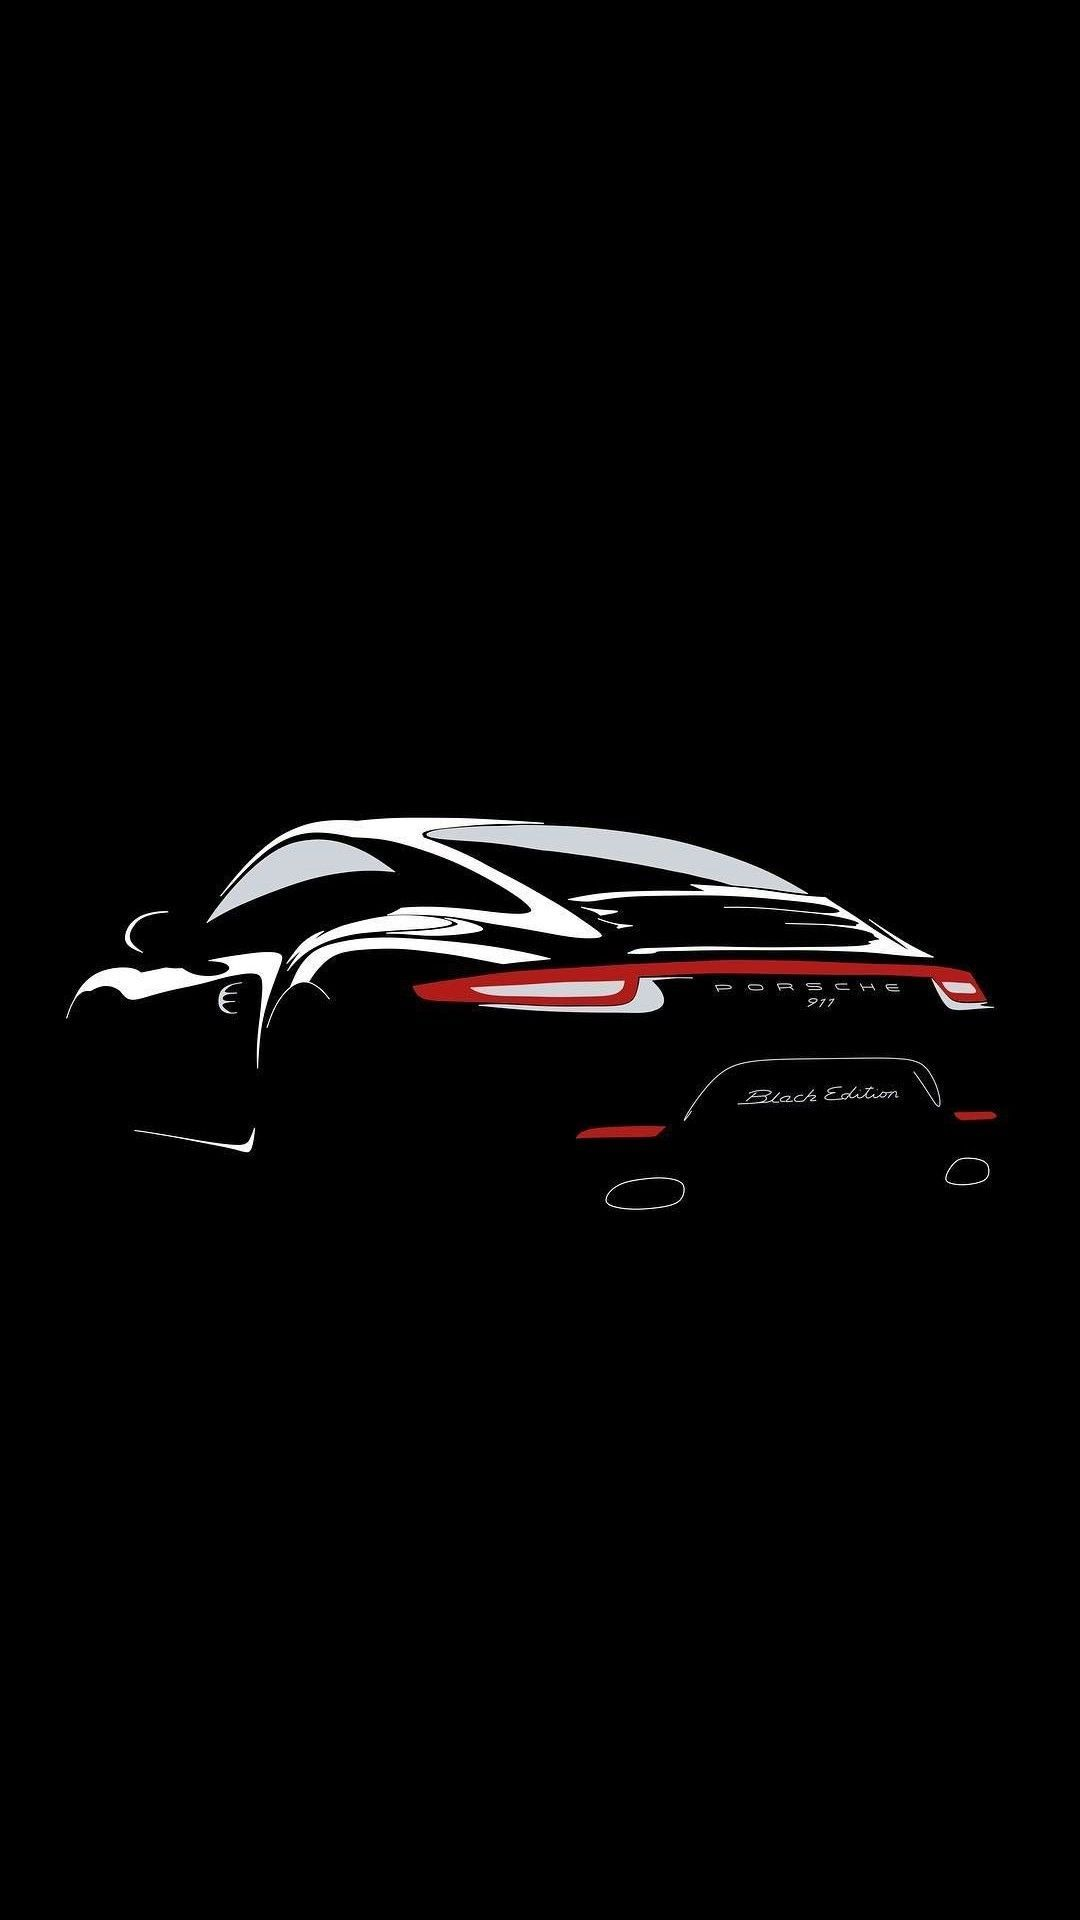 Car Photo In 2020 Porsche Cars Car Wallpapers Super Luxury Cars